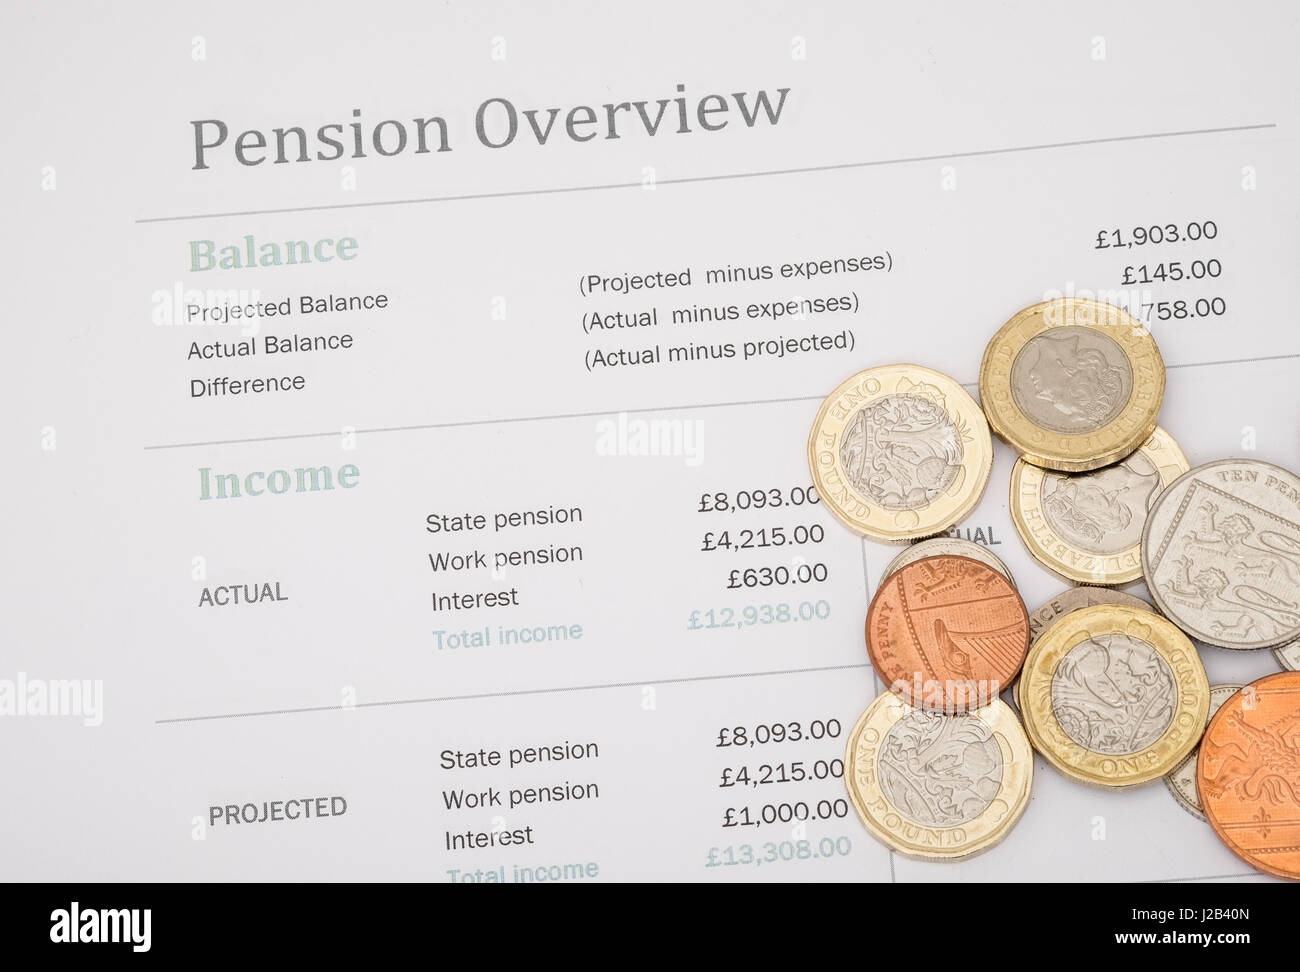 State pension summary with UK coins and calculator - Stock Image